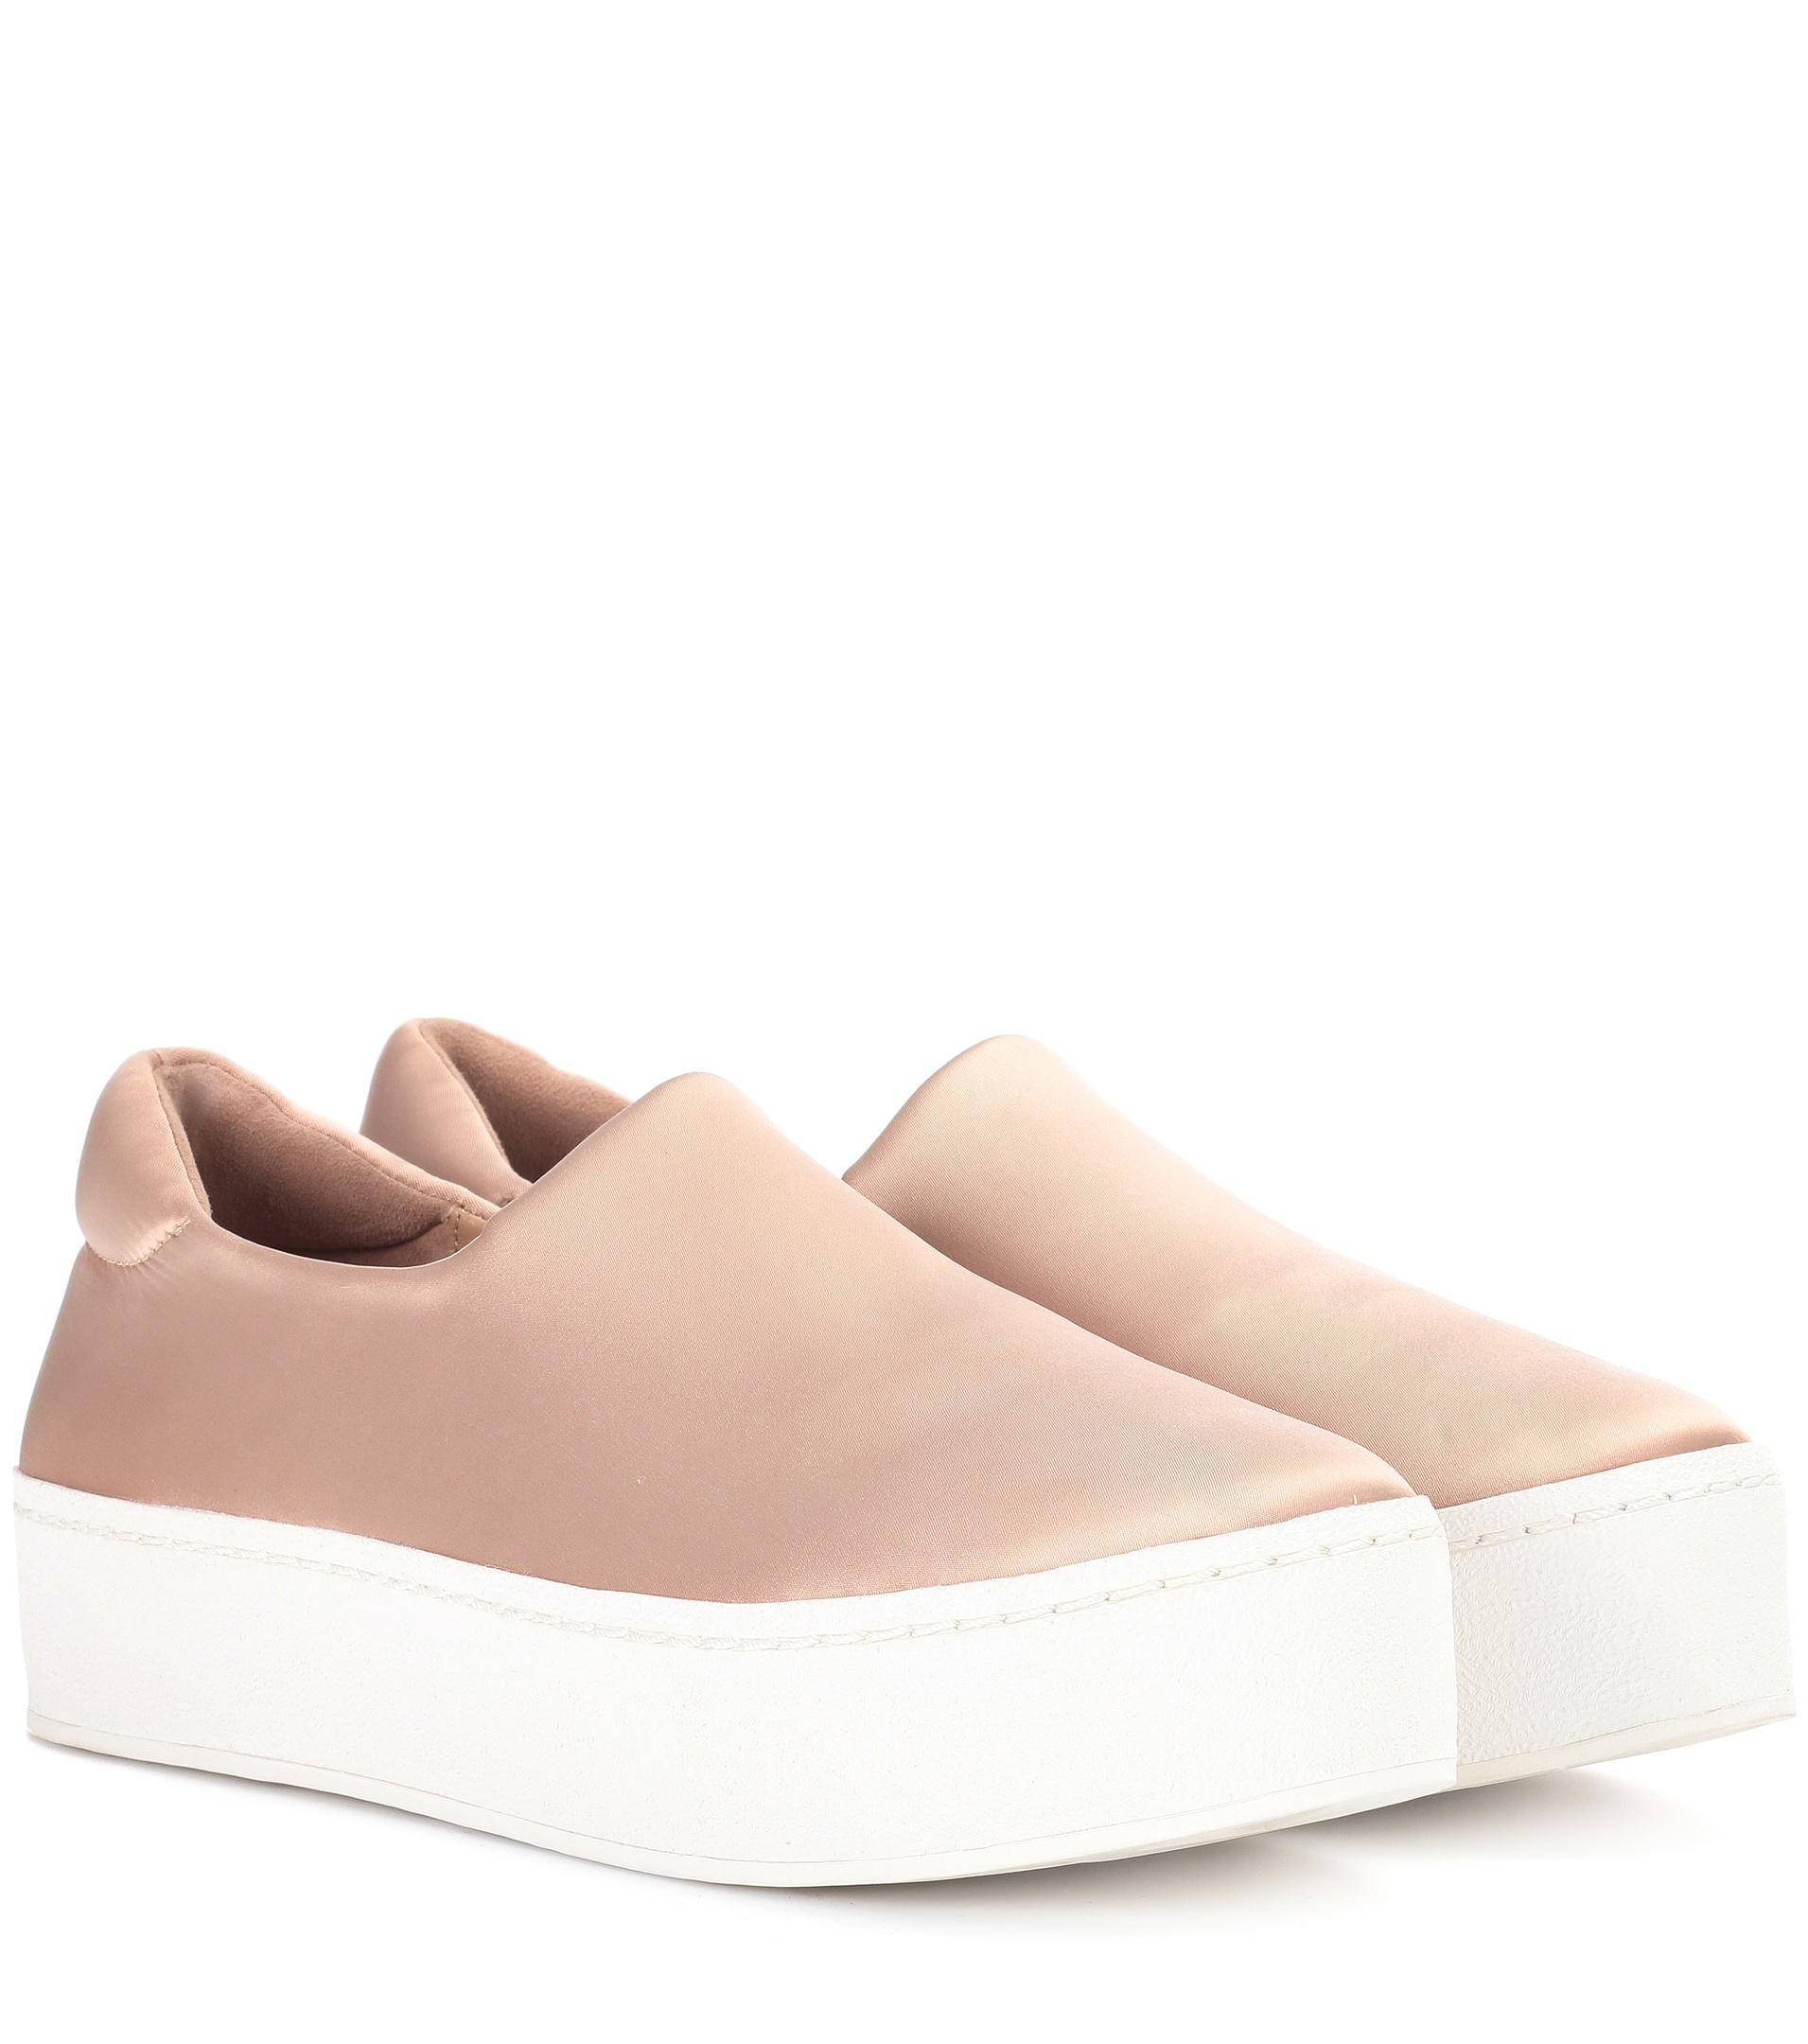 Opening Ceremony Cici Satin Platform Sneakers in Nude (Natural)